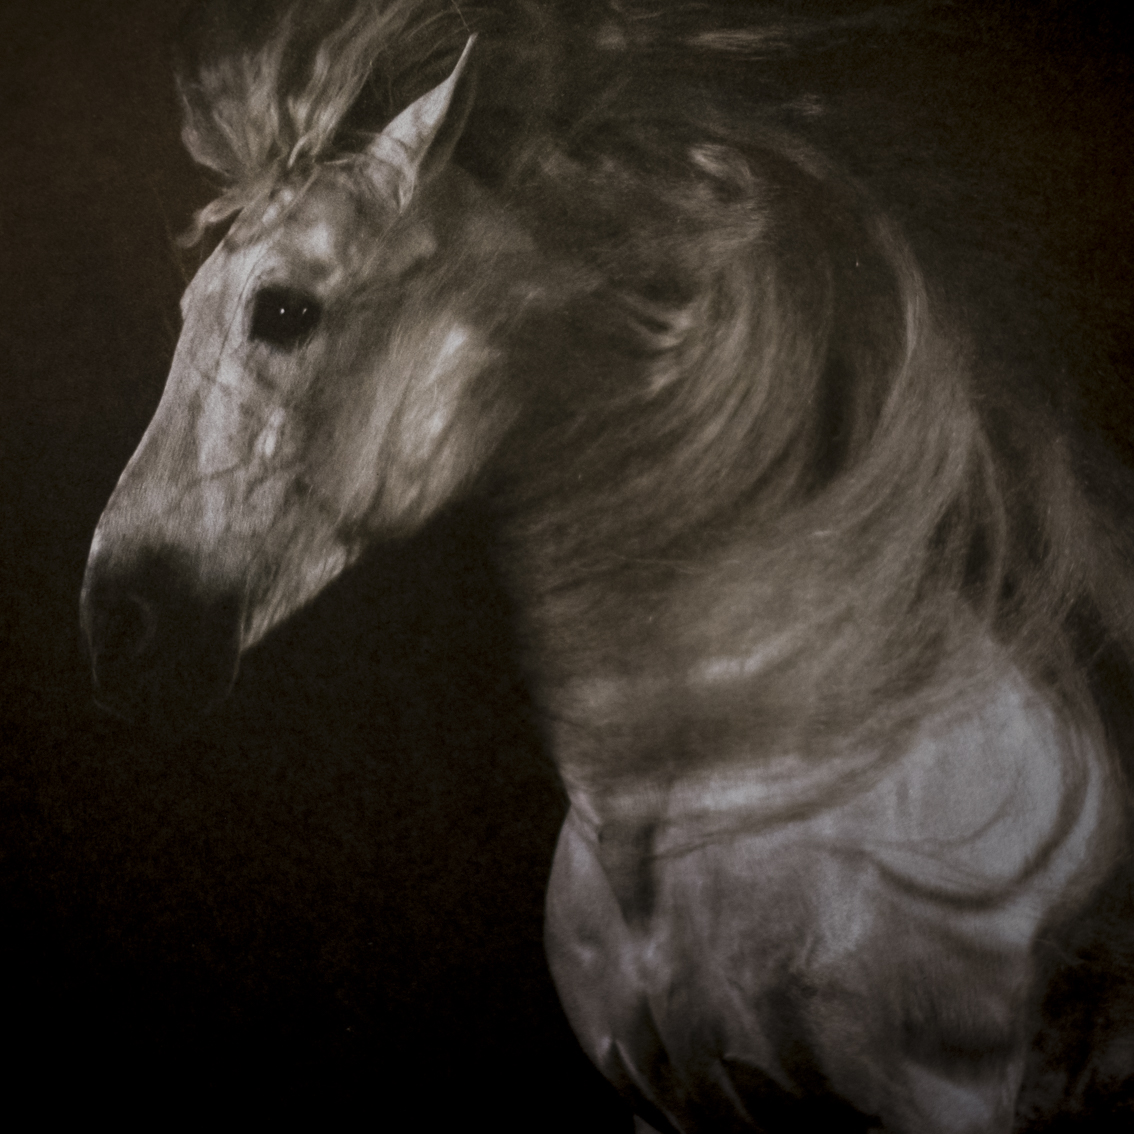 Yann Arthus-Bertrand, Chevaux/Horses.   The lusitaner stallion Templado on the flyleaf of a book about horses that comes close to perfection, it is useless even to try making something better. The way in which Arthus-Bertrand is working in a kind of outdoor studio for horse photography is outstanding.